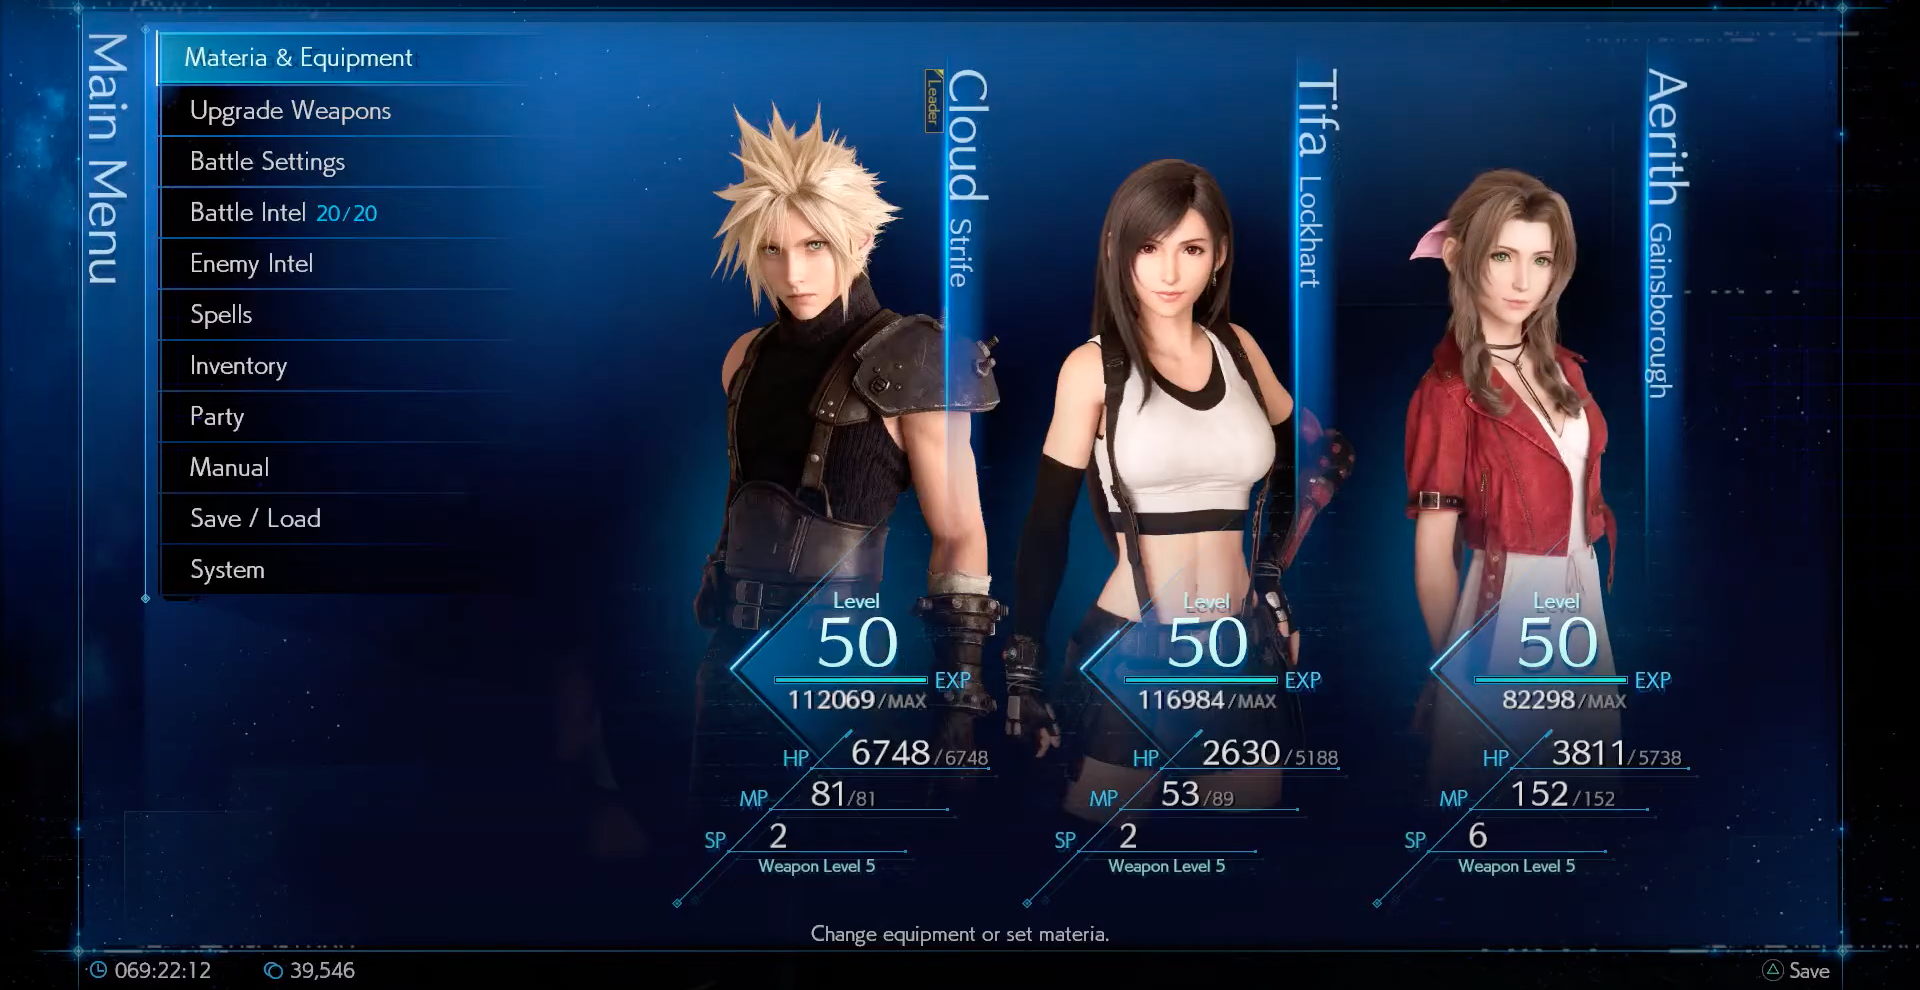 Remake Menu Screen at Level 50